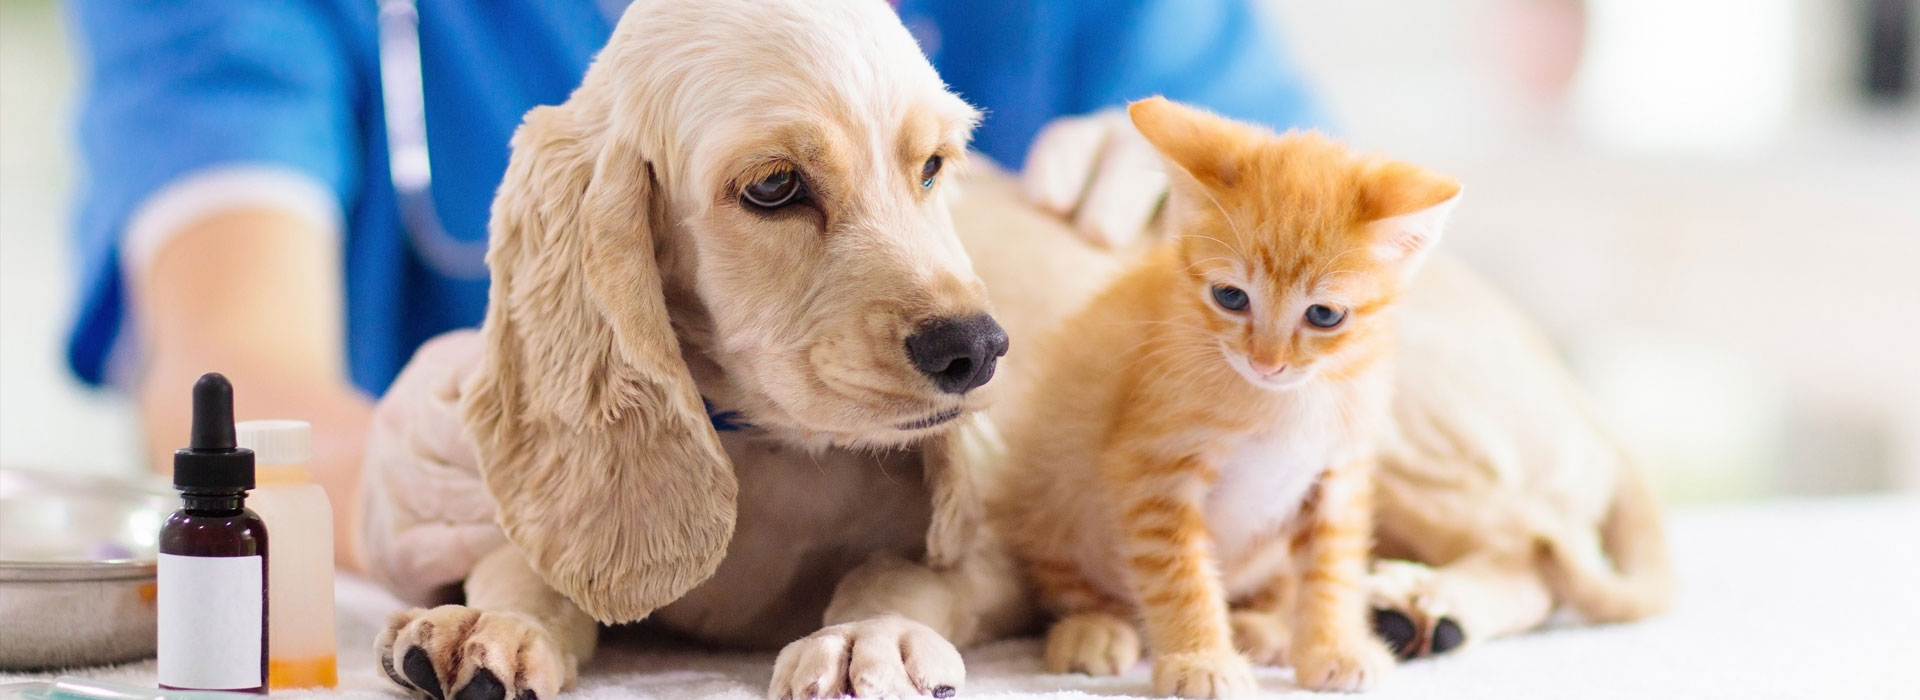 Decreasing interest in pet vaccines